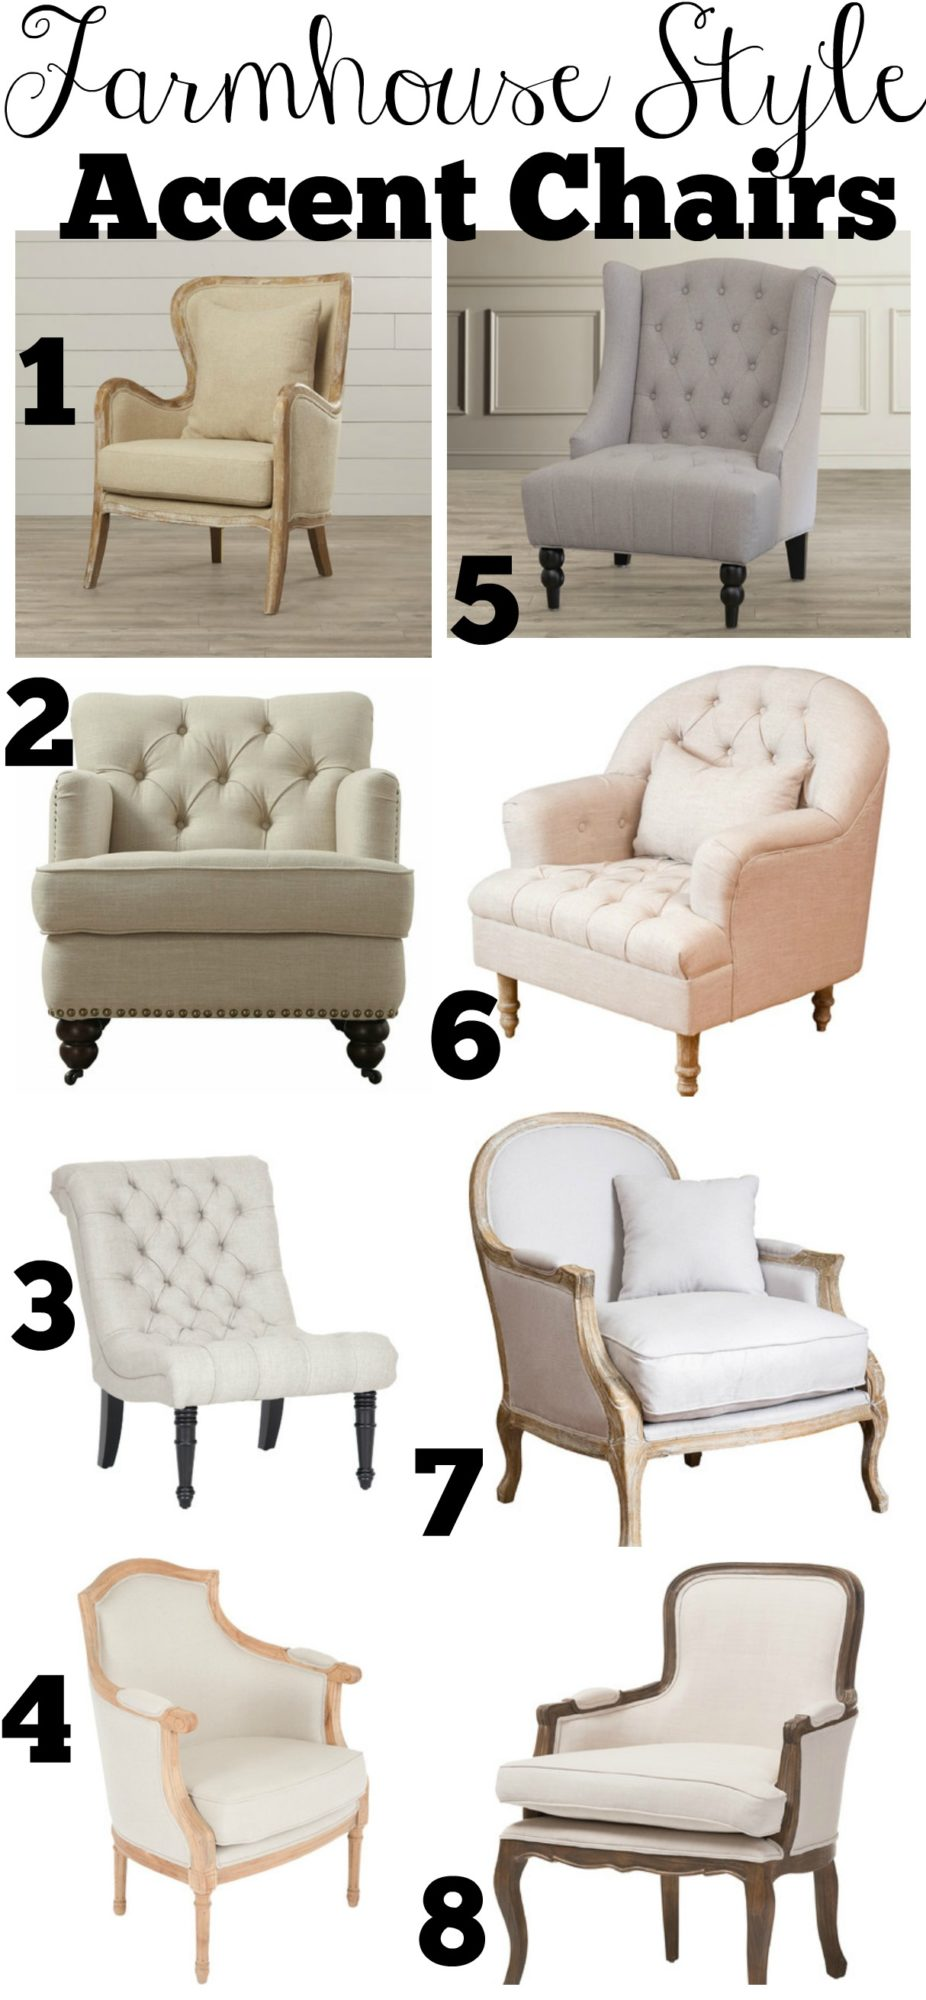 Farmhouse Style Accent Chairs